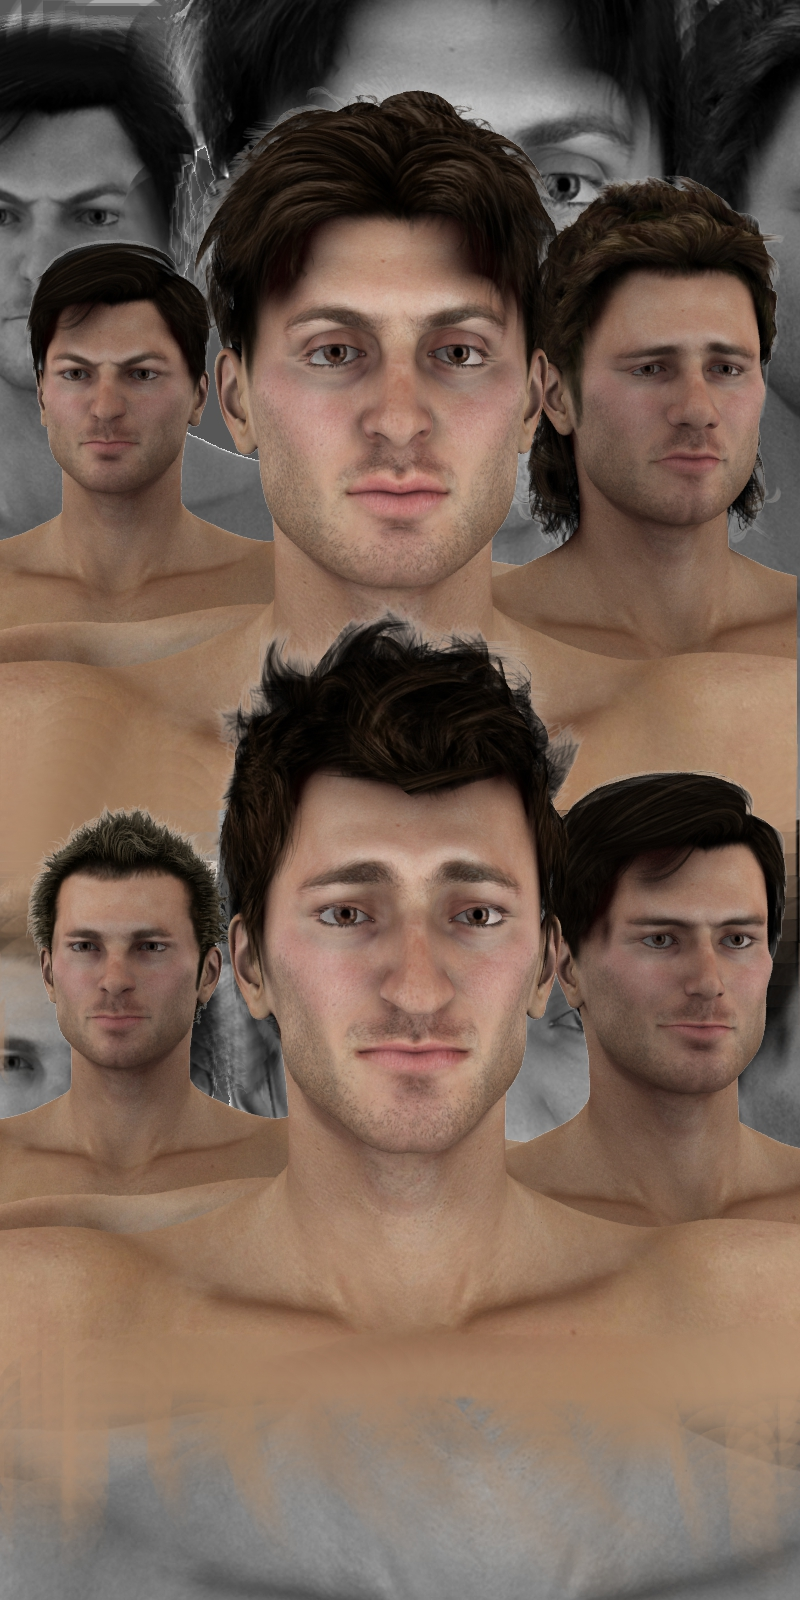 Farconville's Face Morphs++ for M4 Vol.2